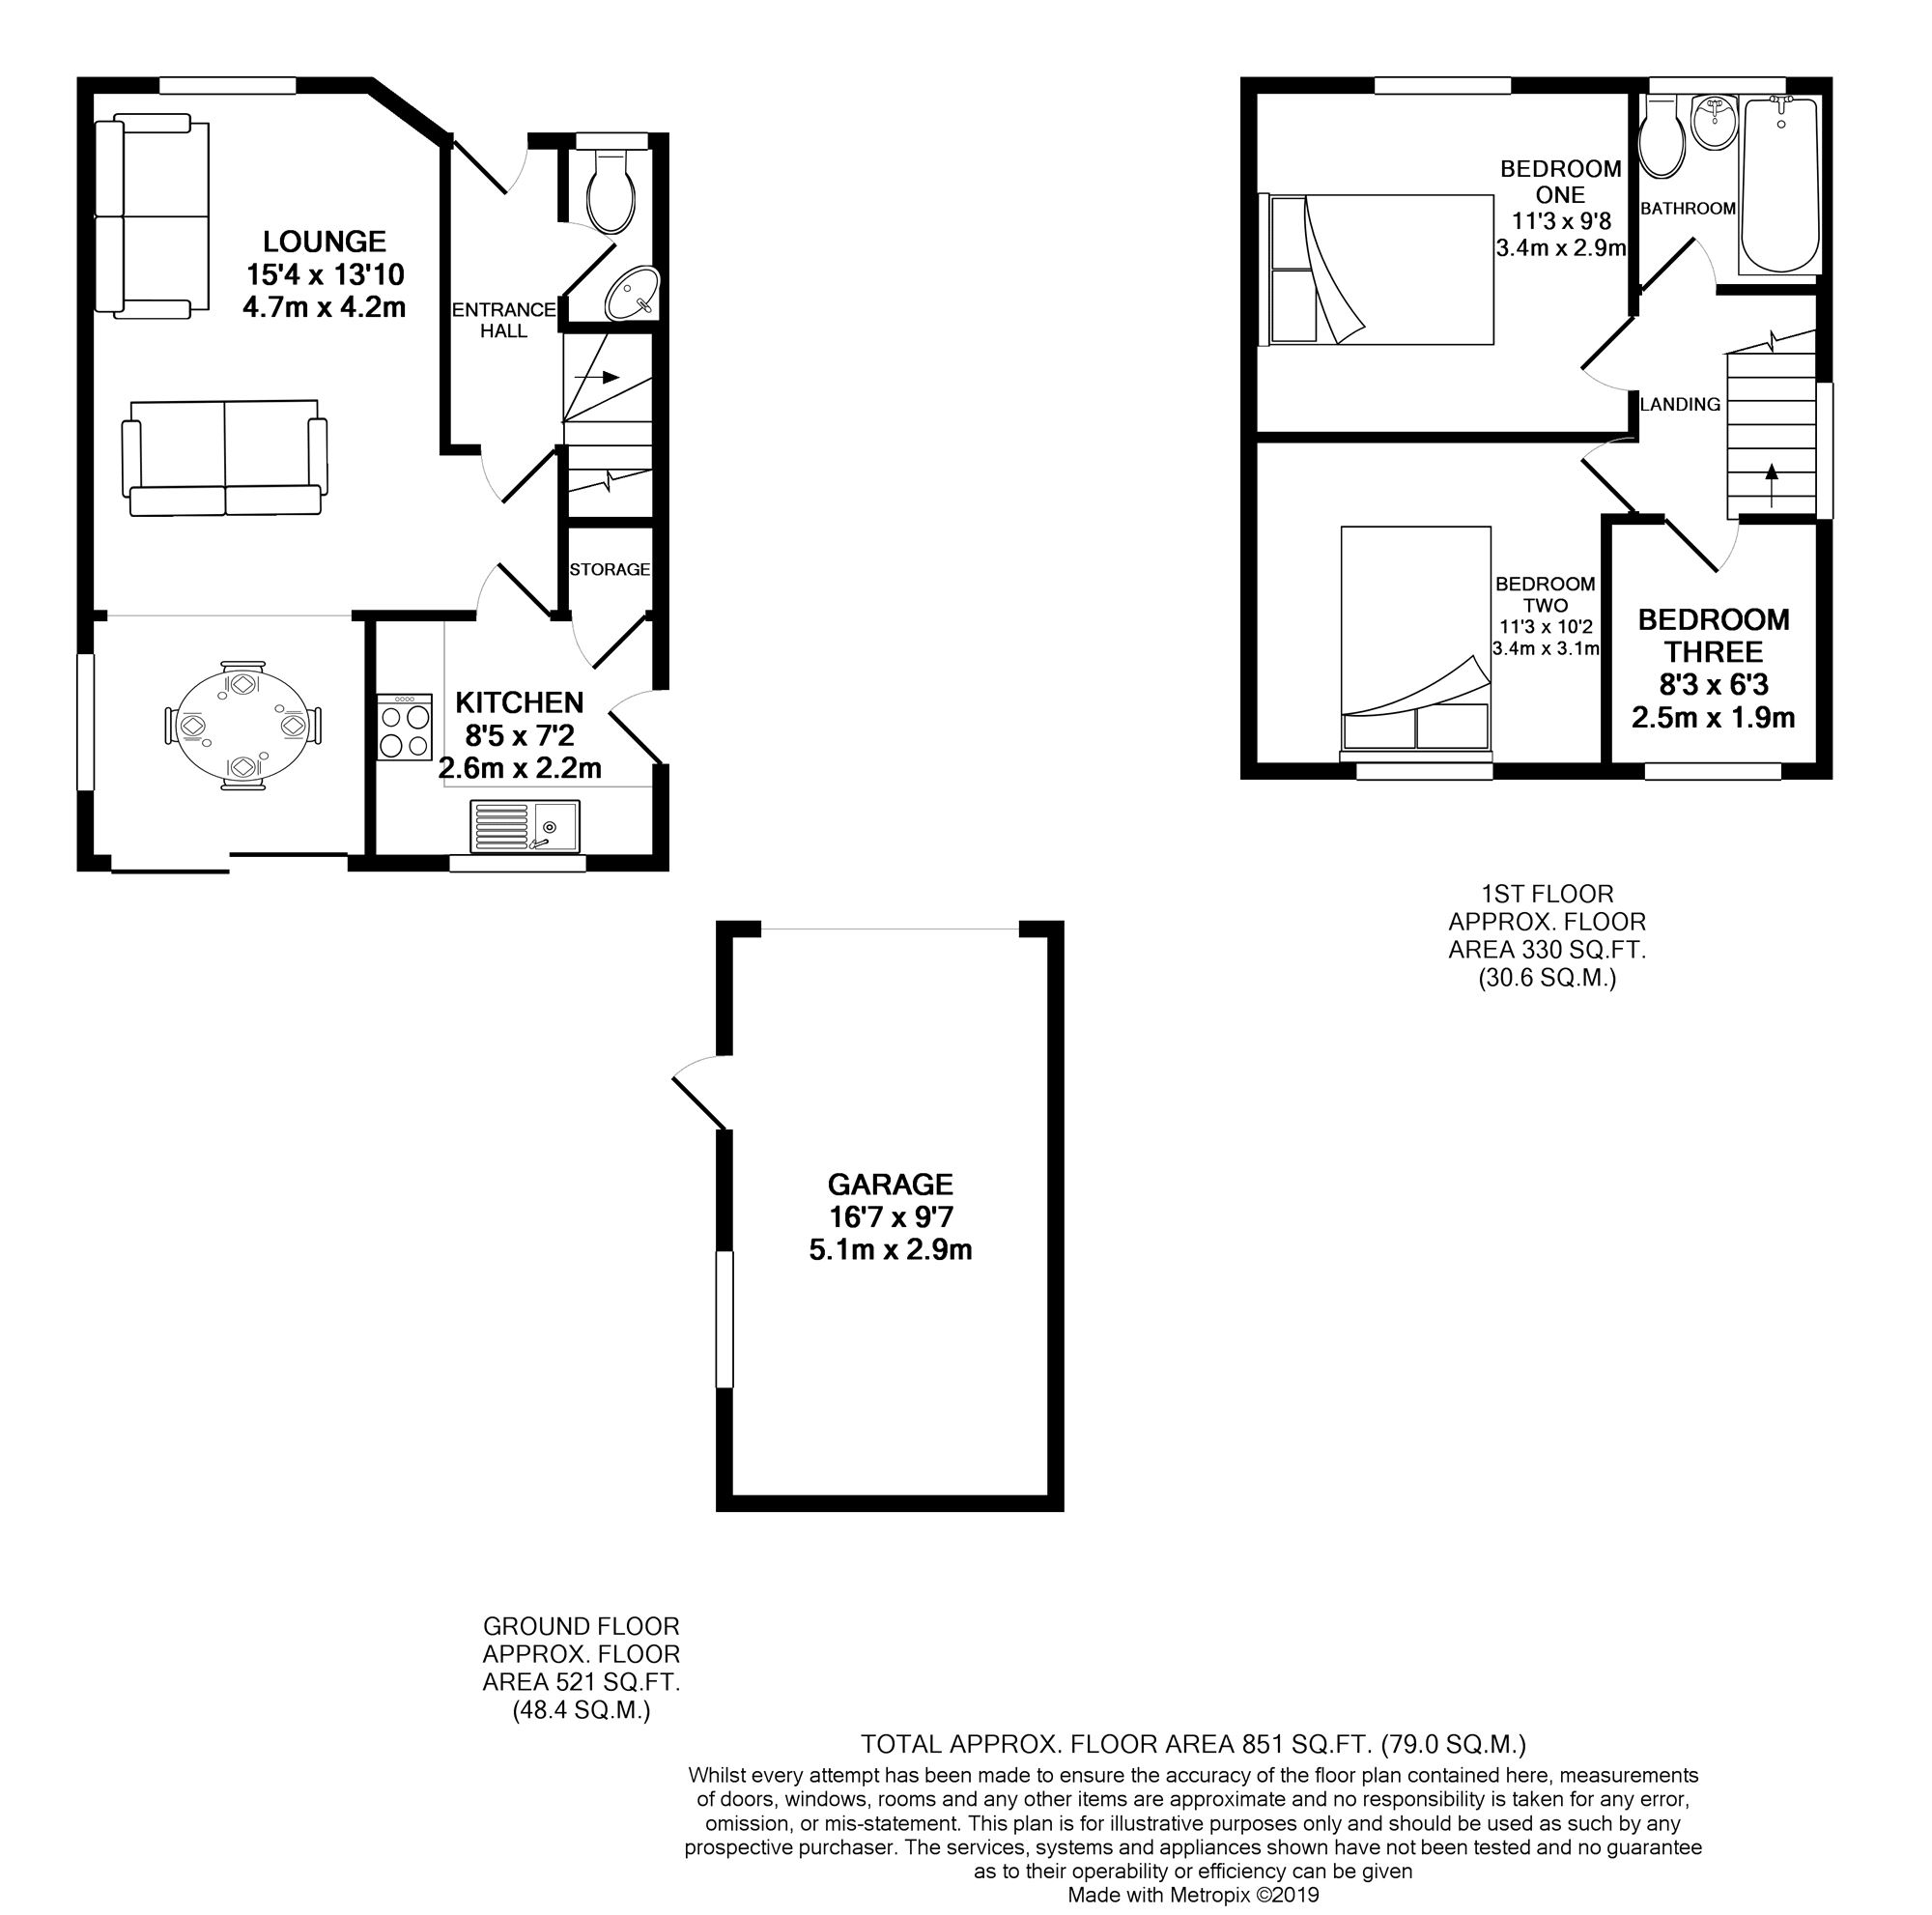 Floorplans For Theale, Reading, Berkshire